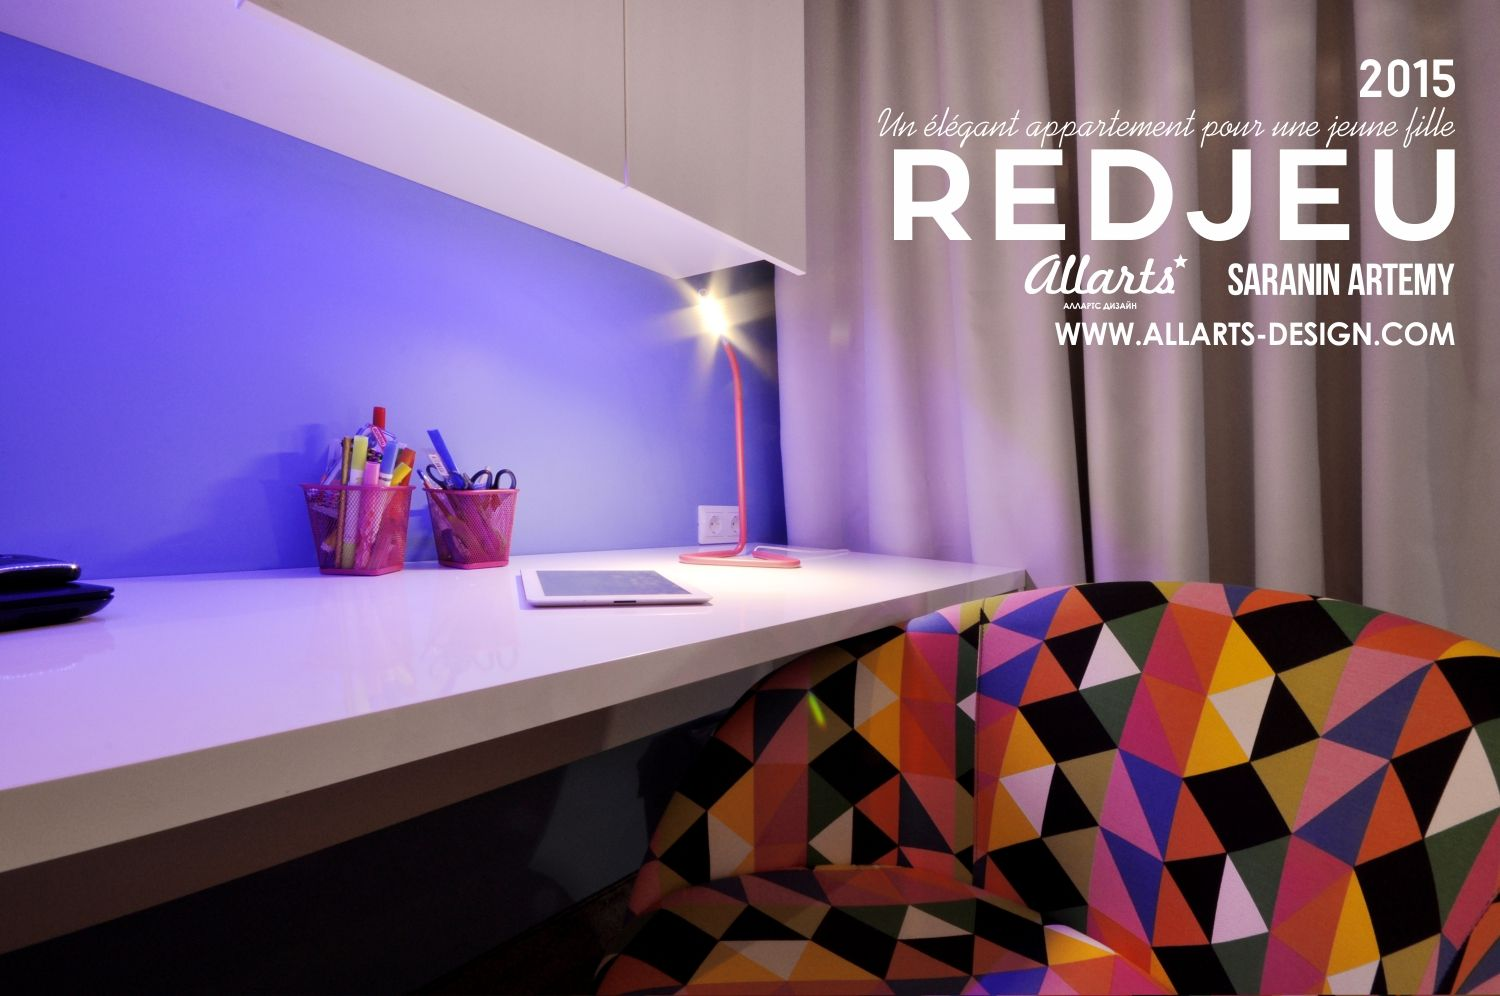 The project was designed by REDJEU Saranin Artemy - ALLARTSDESIGN (www.allarts-design.com) in 2015   This stylish and bright apartment belongs to a young girl with her daughter. The hostess asked the studio ALLARSTDESIGN after received the keys and it's the issue of repair. Customer once insisted on the interior - in which everything must be red, slowly and surely, we exclude too much of this color. We added a lot of light metal and textured coatings.  www.allarts-design.com